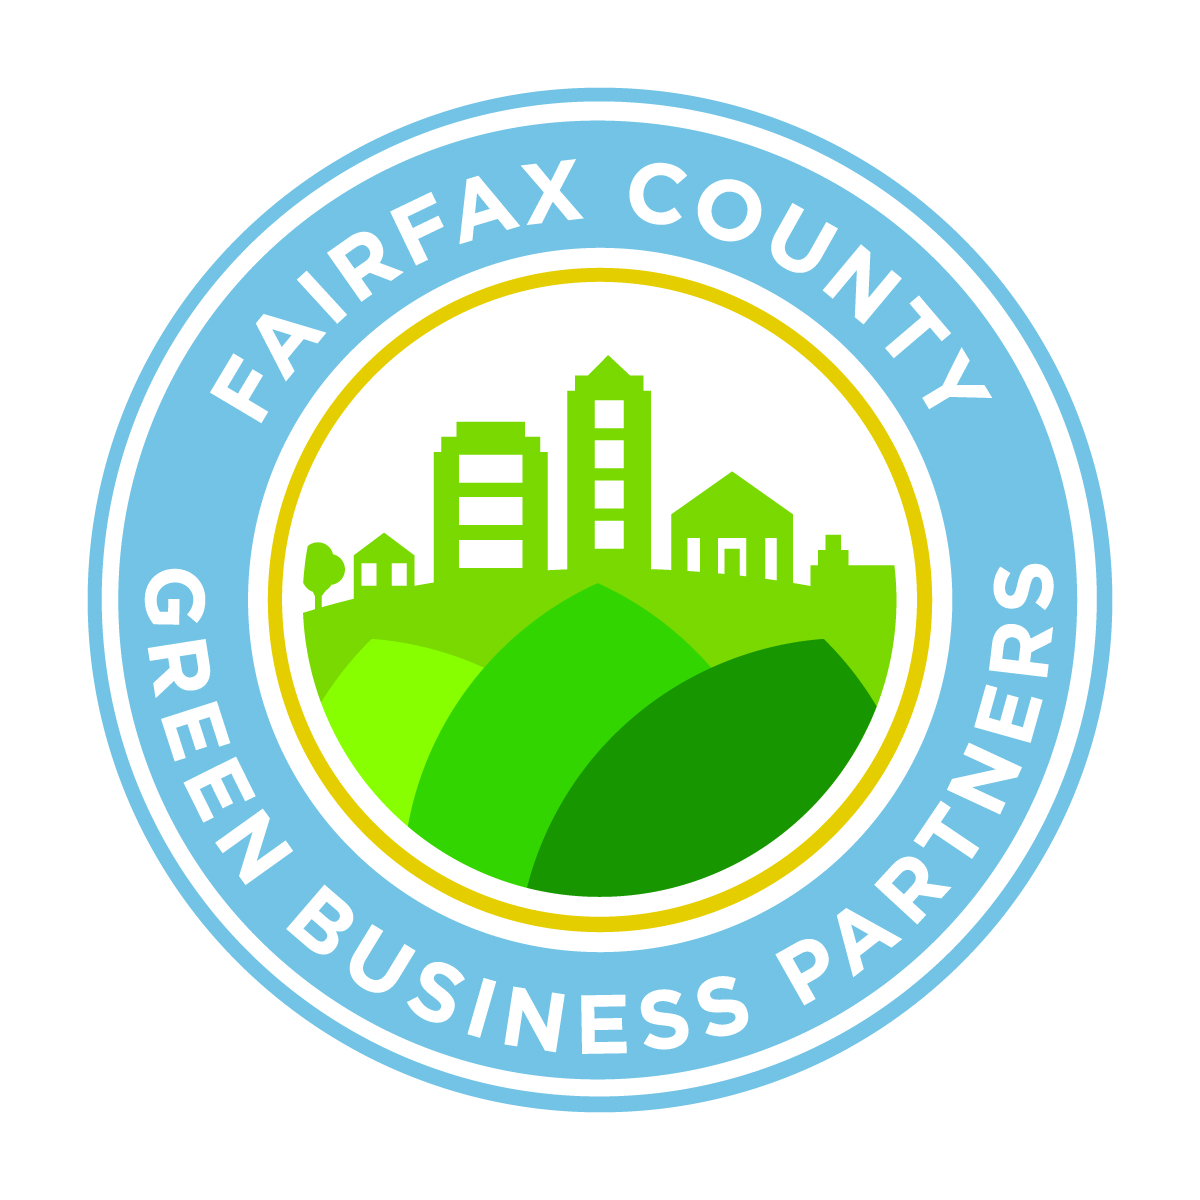 Green Business Parnters logo.